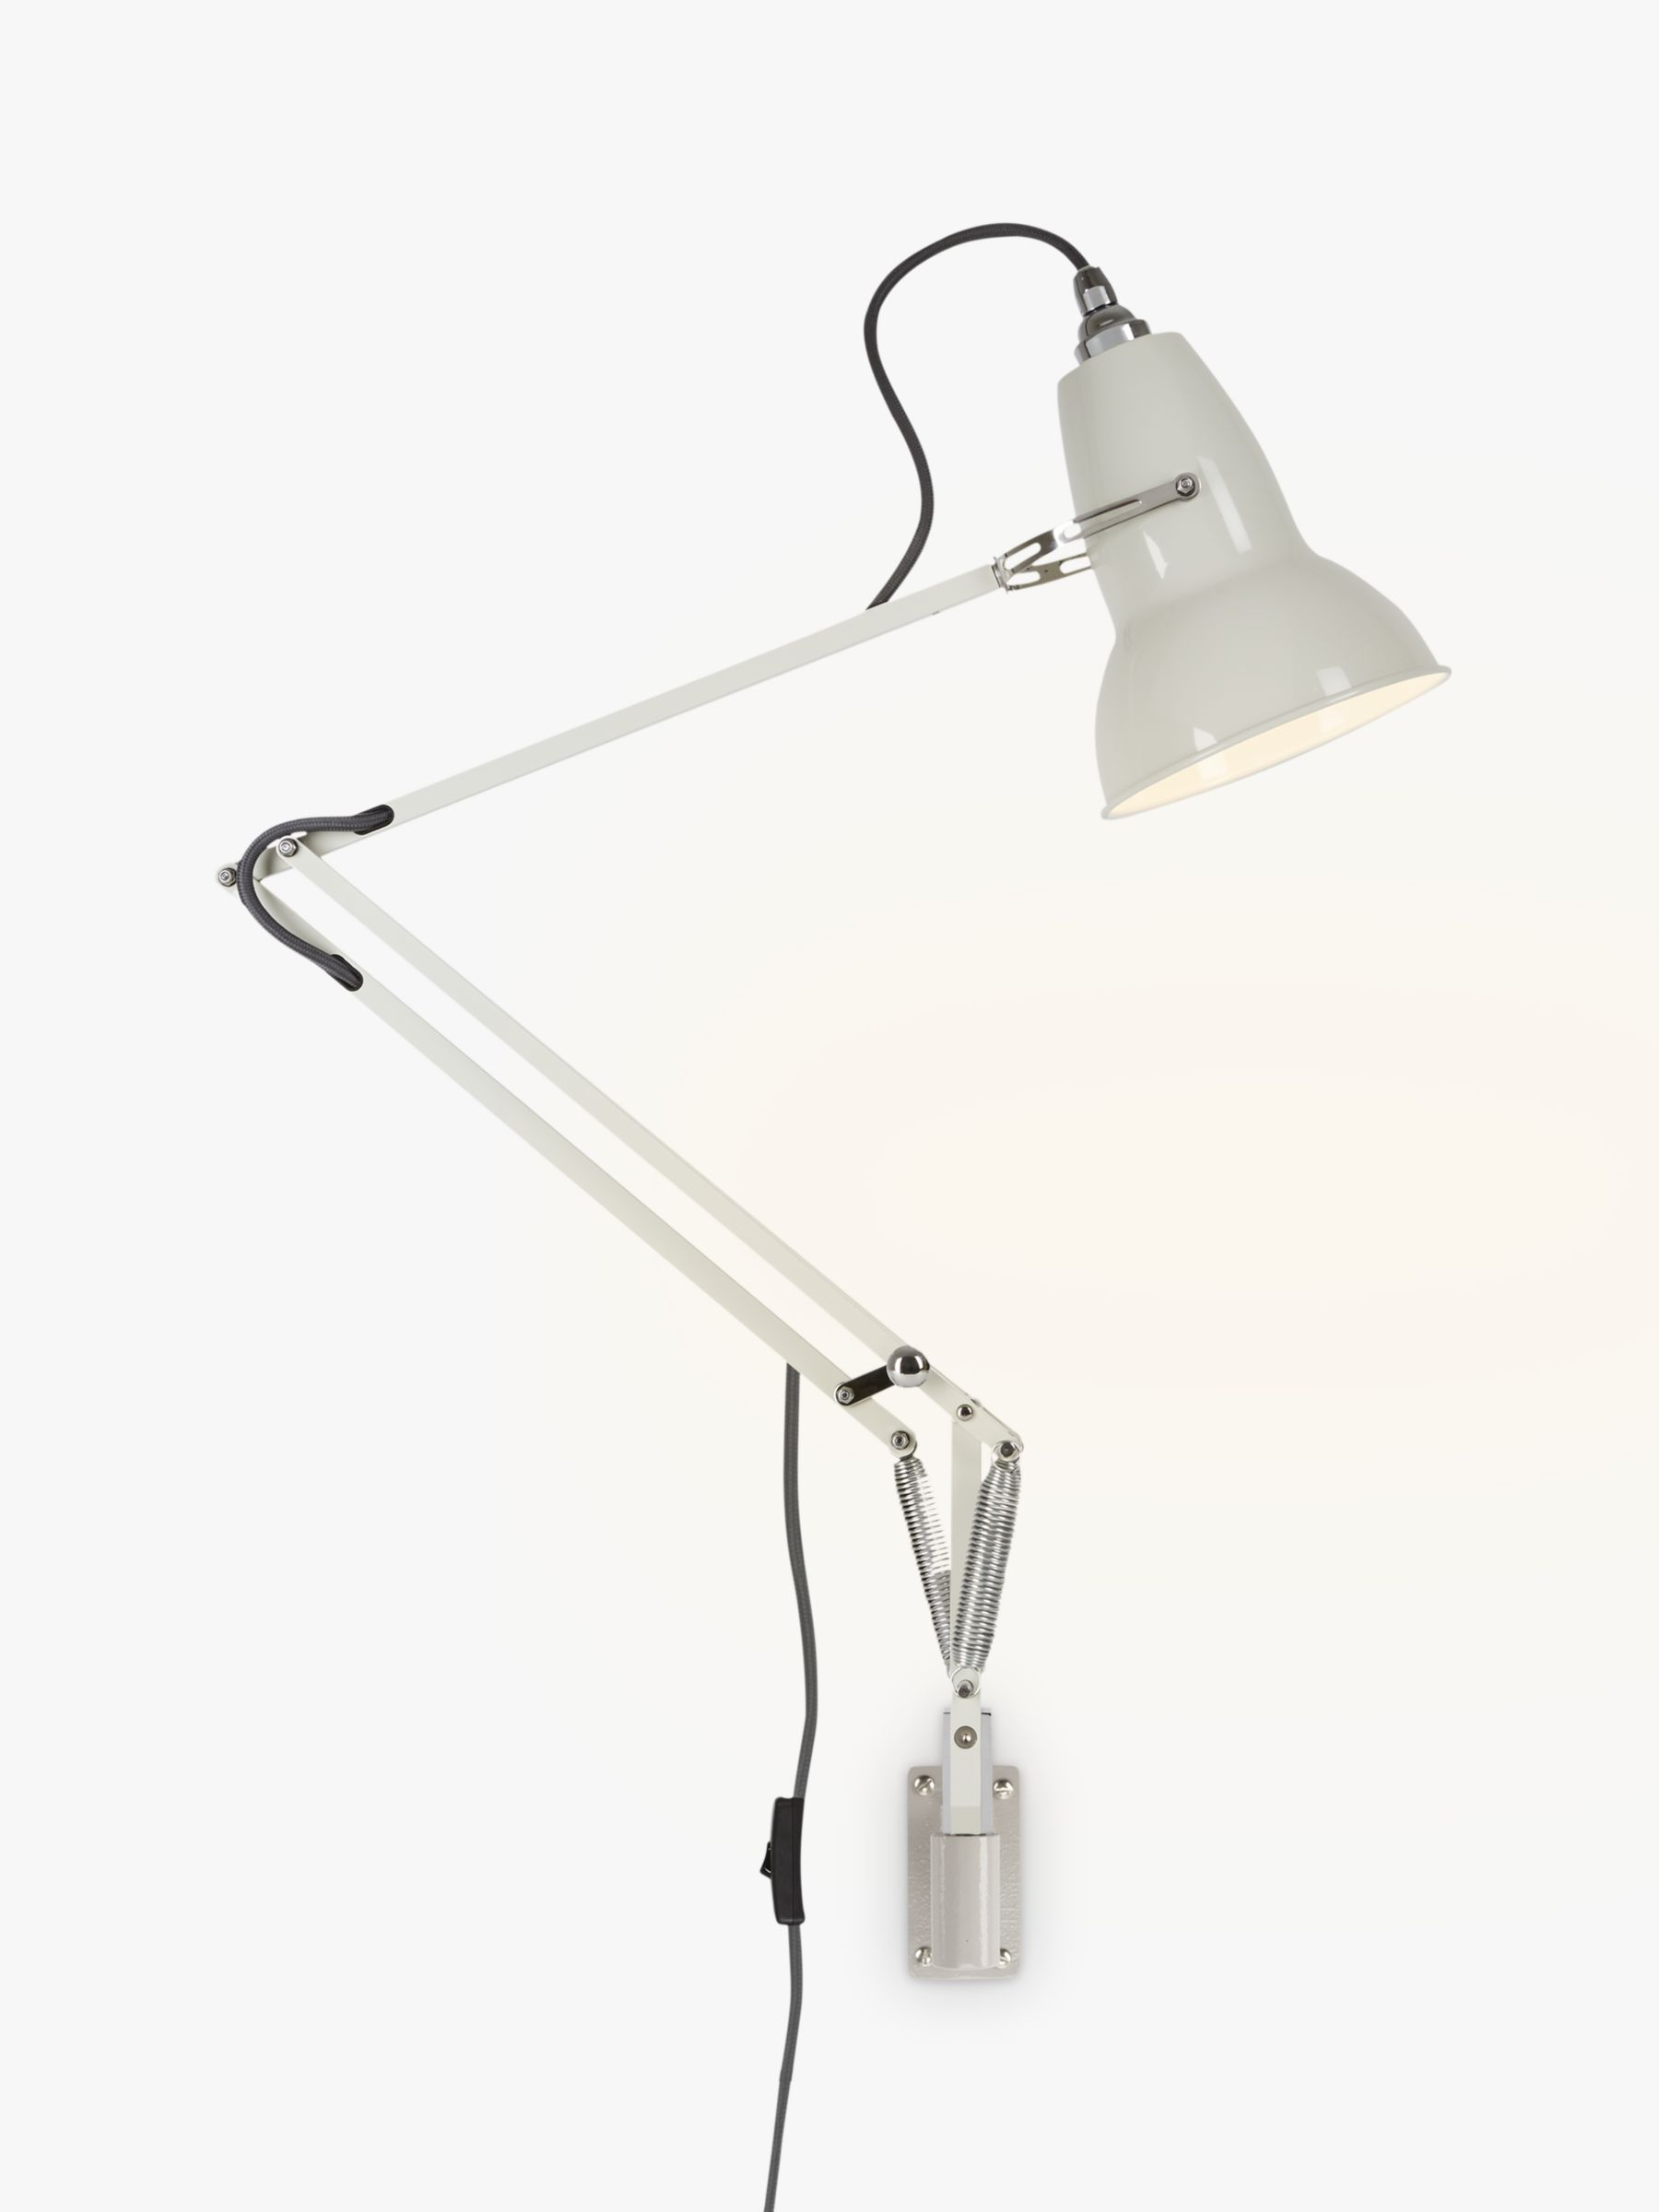 Anglepoise Anglepoise Original 1227 Extendable Wall Light